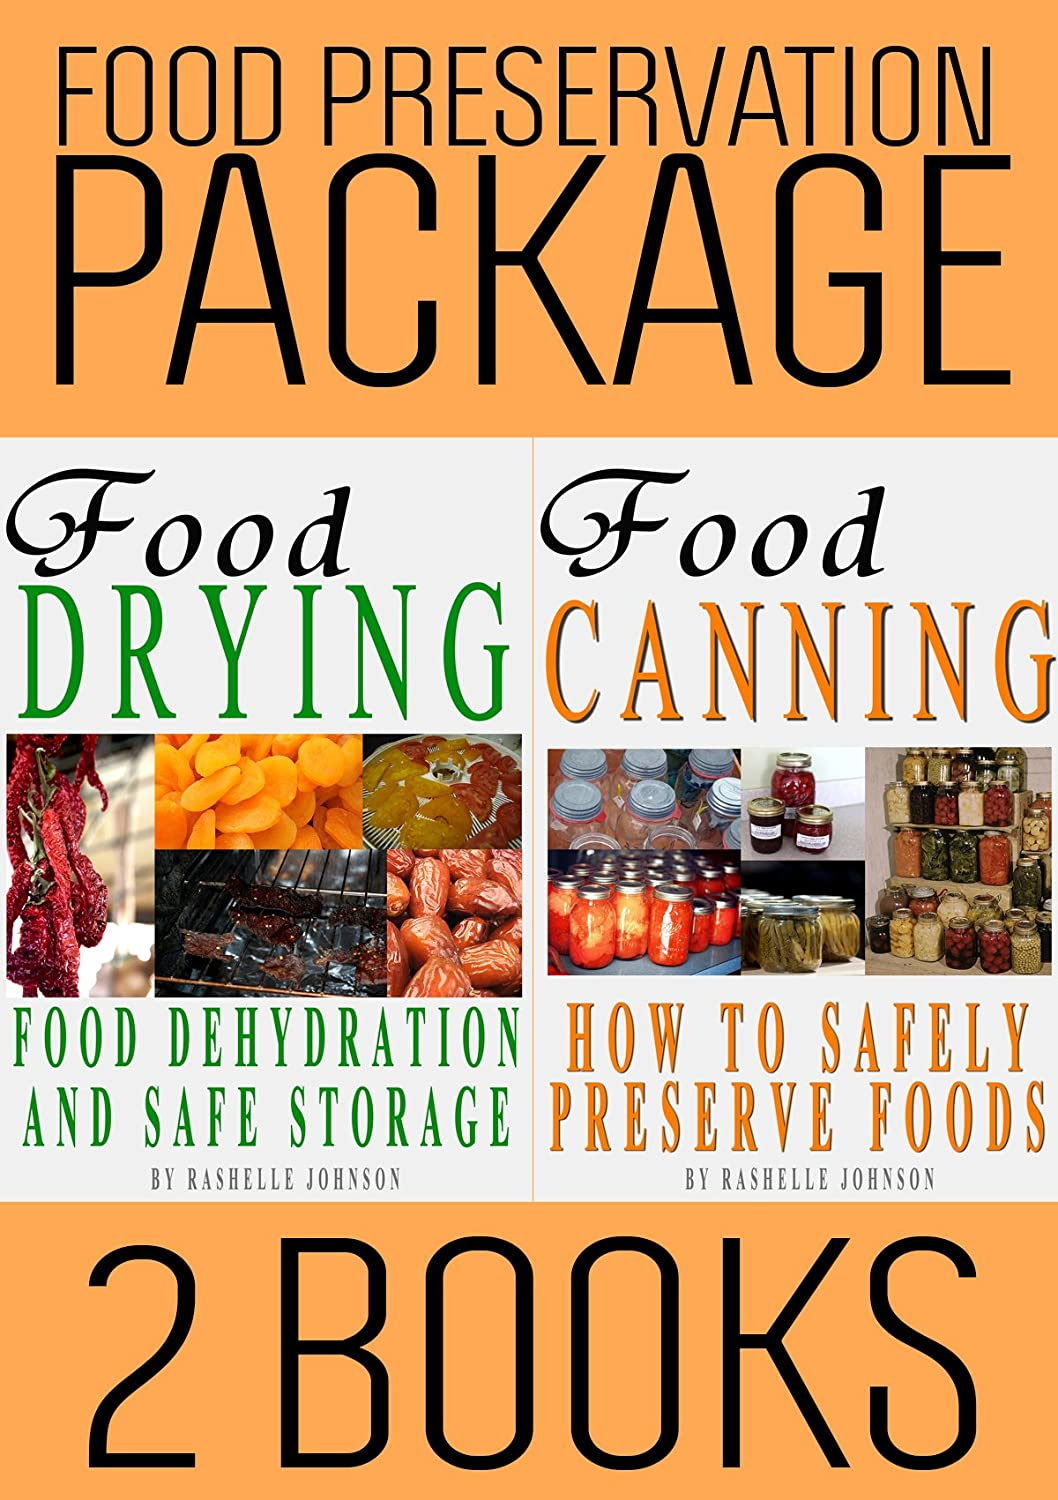 http://www.amazon.com/Food-Preservation-Book-Package-Canning-ebook/dp/B00BRBMO0U/ref=as_sl_pc_ss_til?tag=lettfromahome-20&linkCode=w01&linkId=65RW2MESHMYT7DOV&creativeASIN=B00BRBMO0U